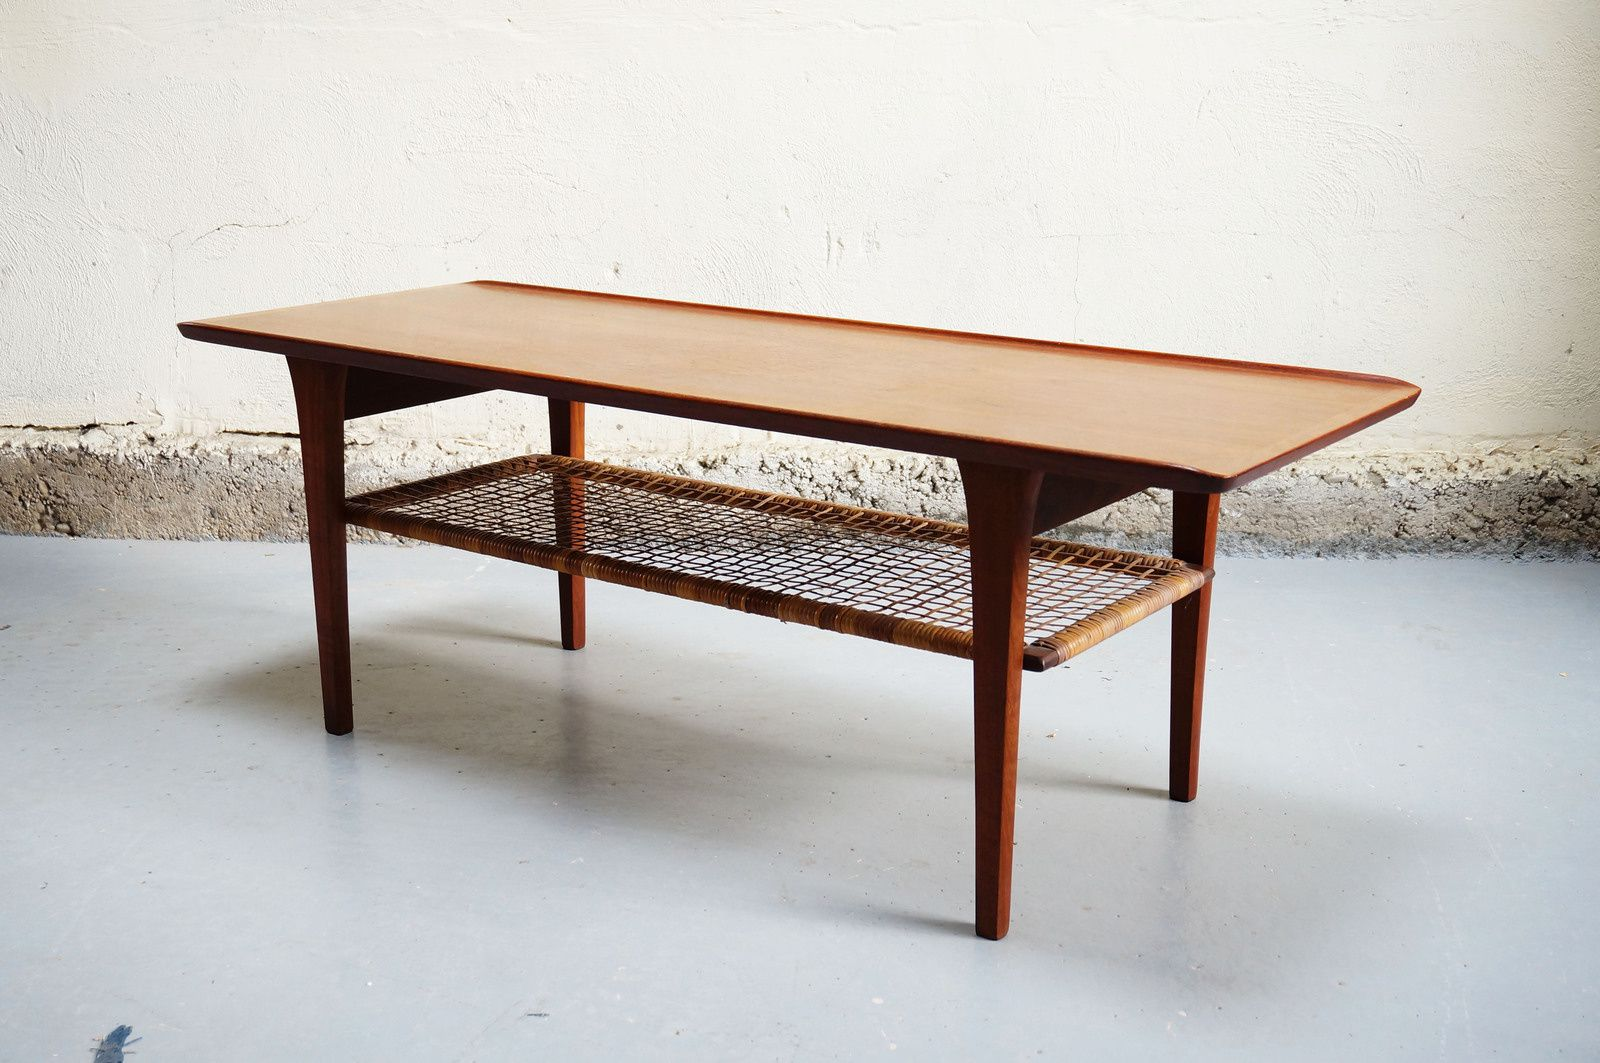 Table basse danoise scandinave teck mobelintarsia denmark for Table basse scandinave salon